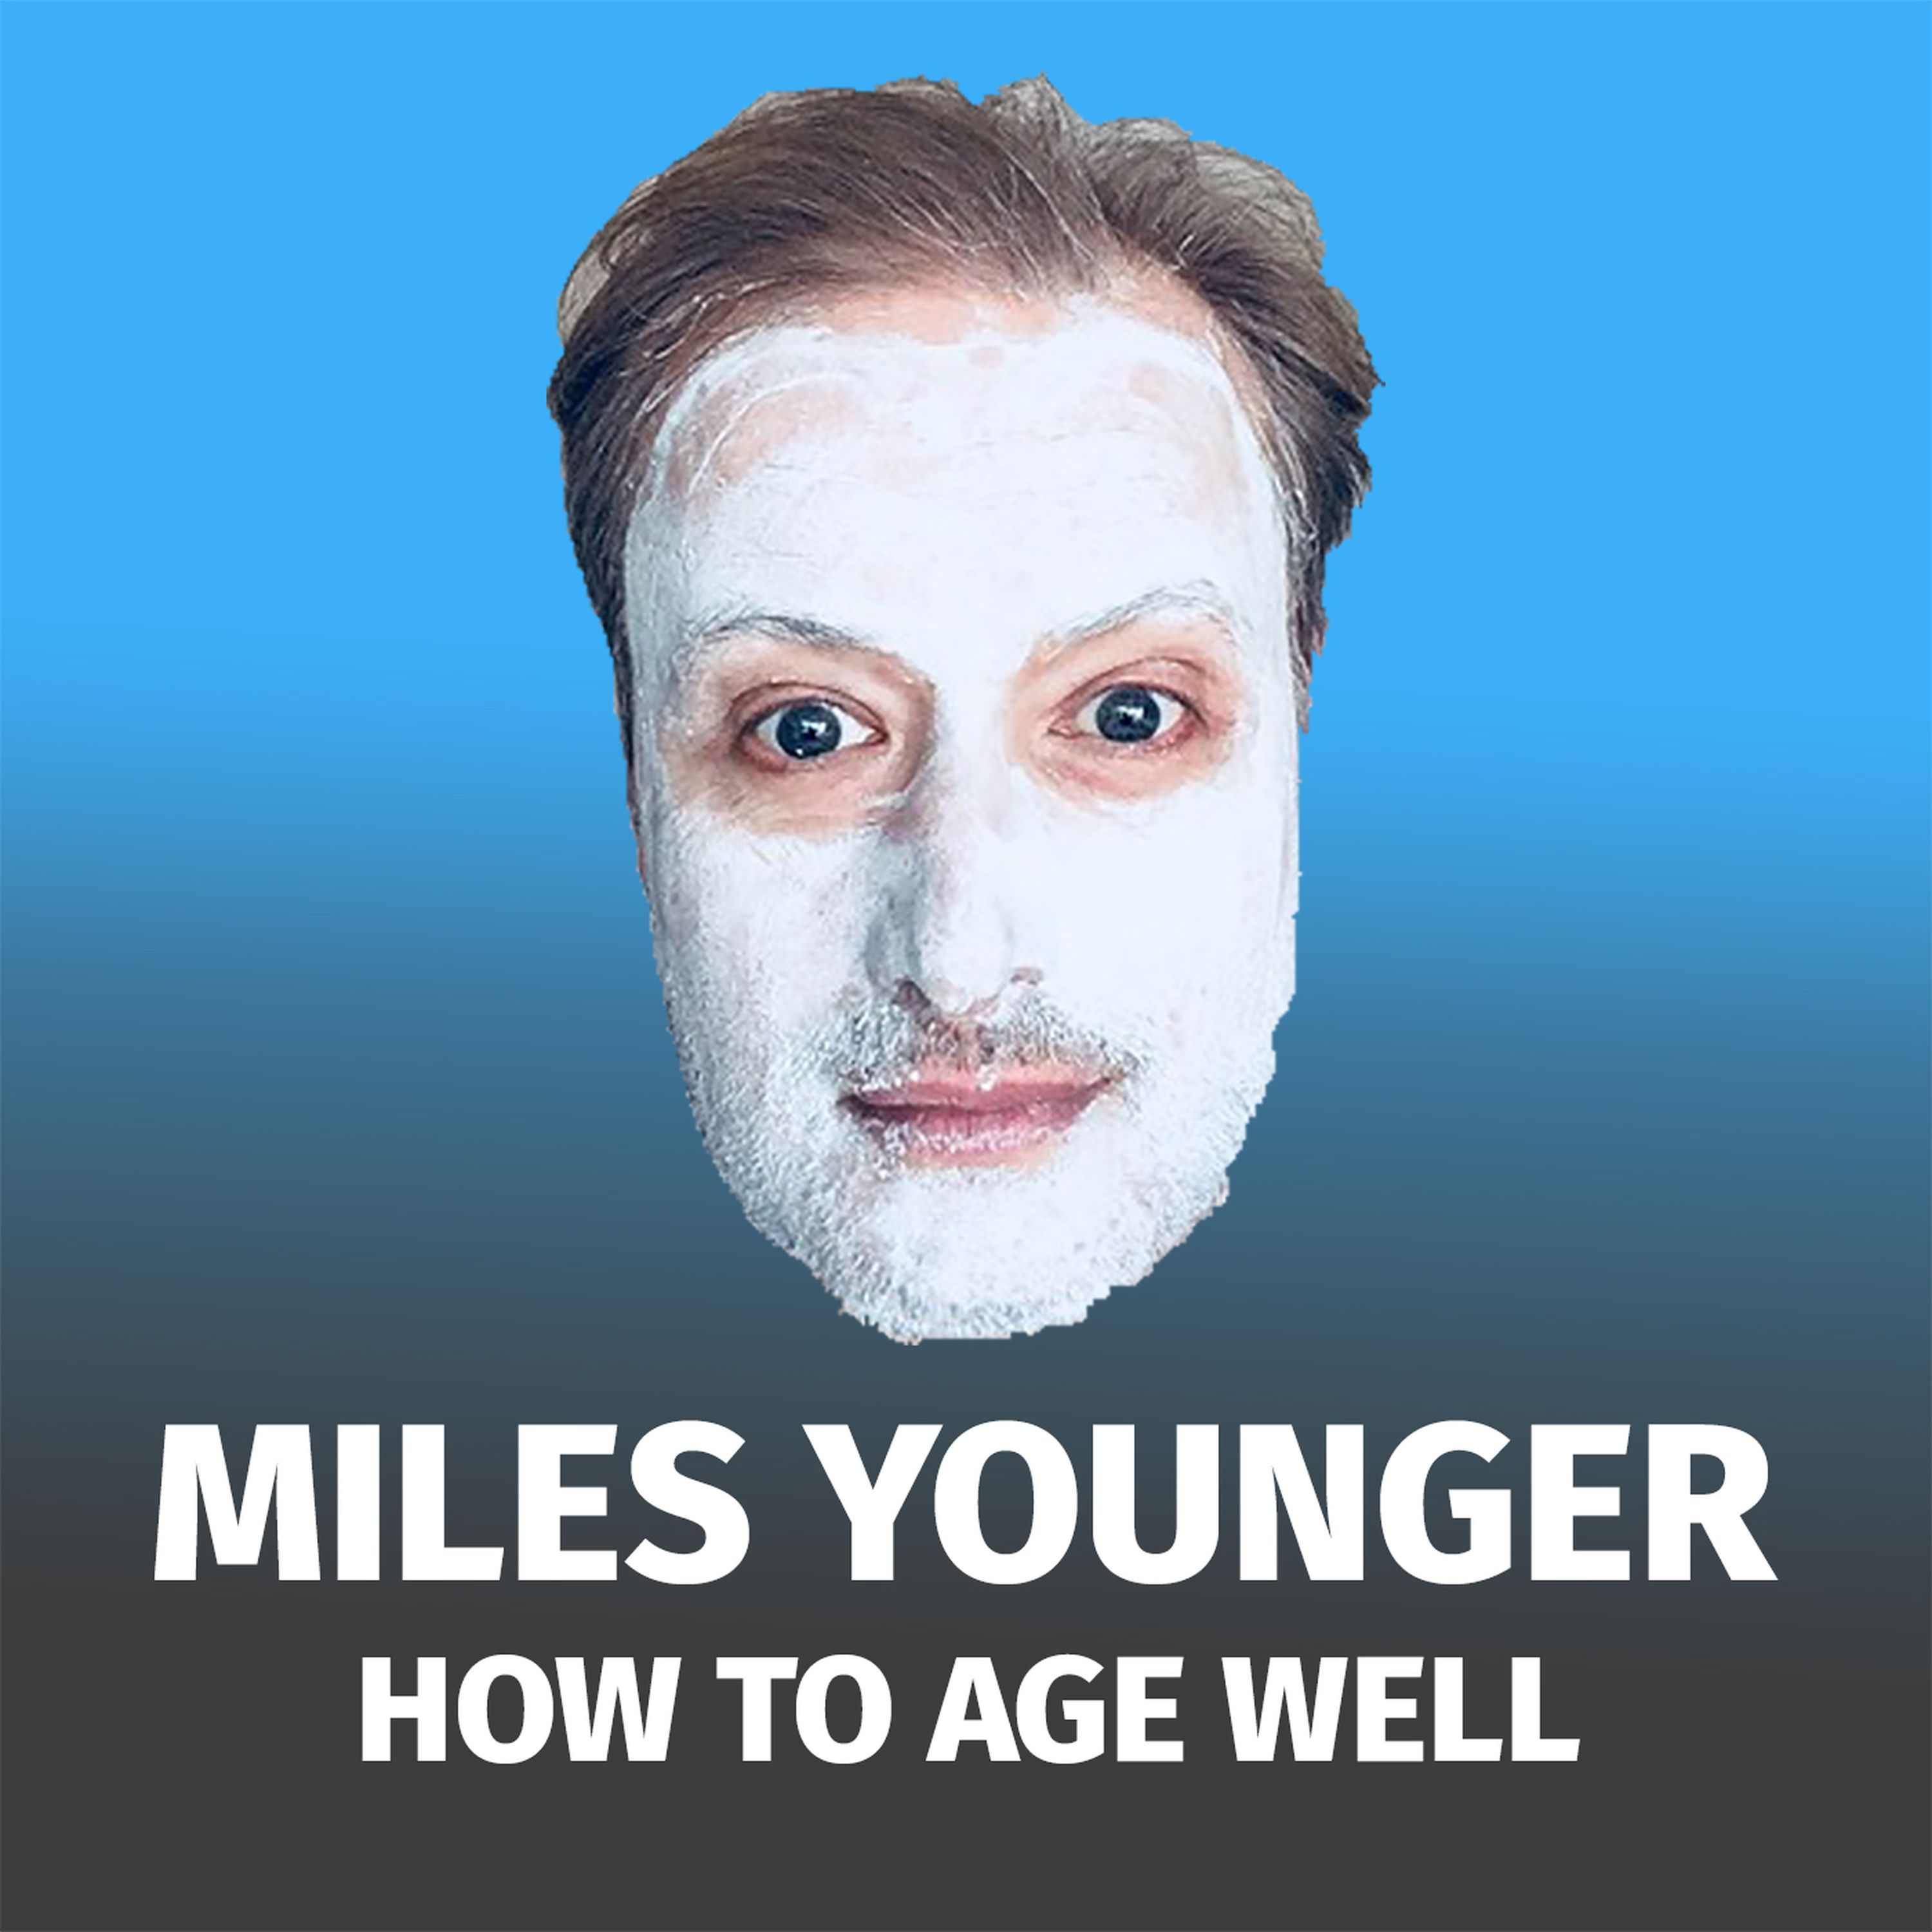 Miles Younger - How to Age Well - Lorraine Kelly